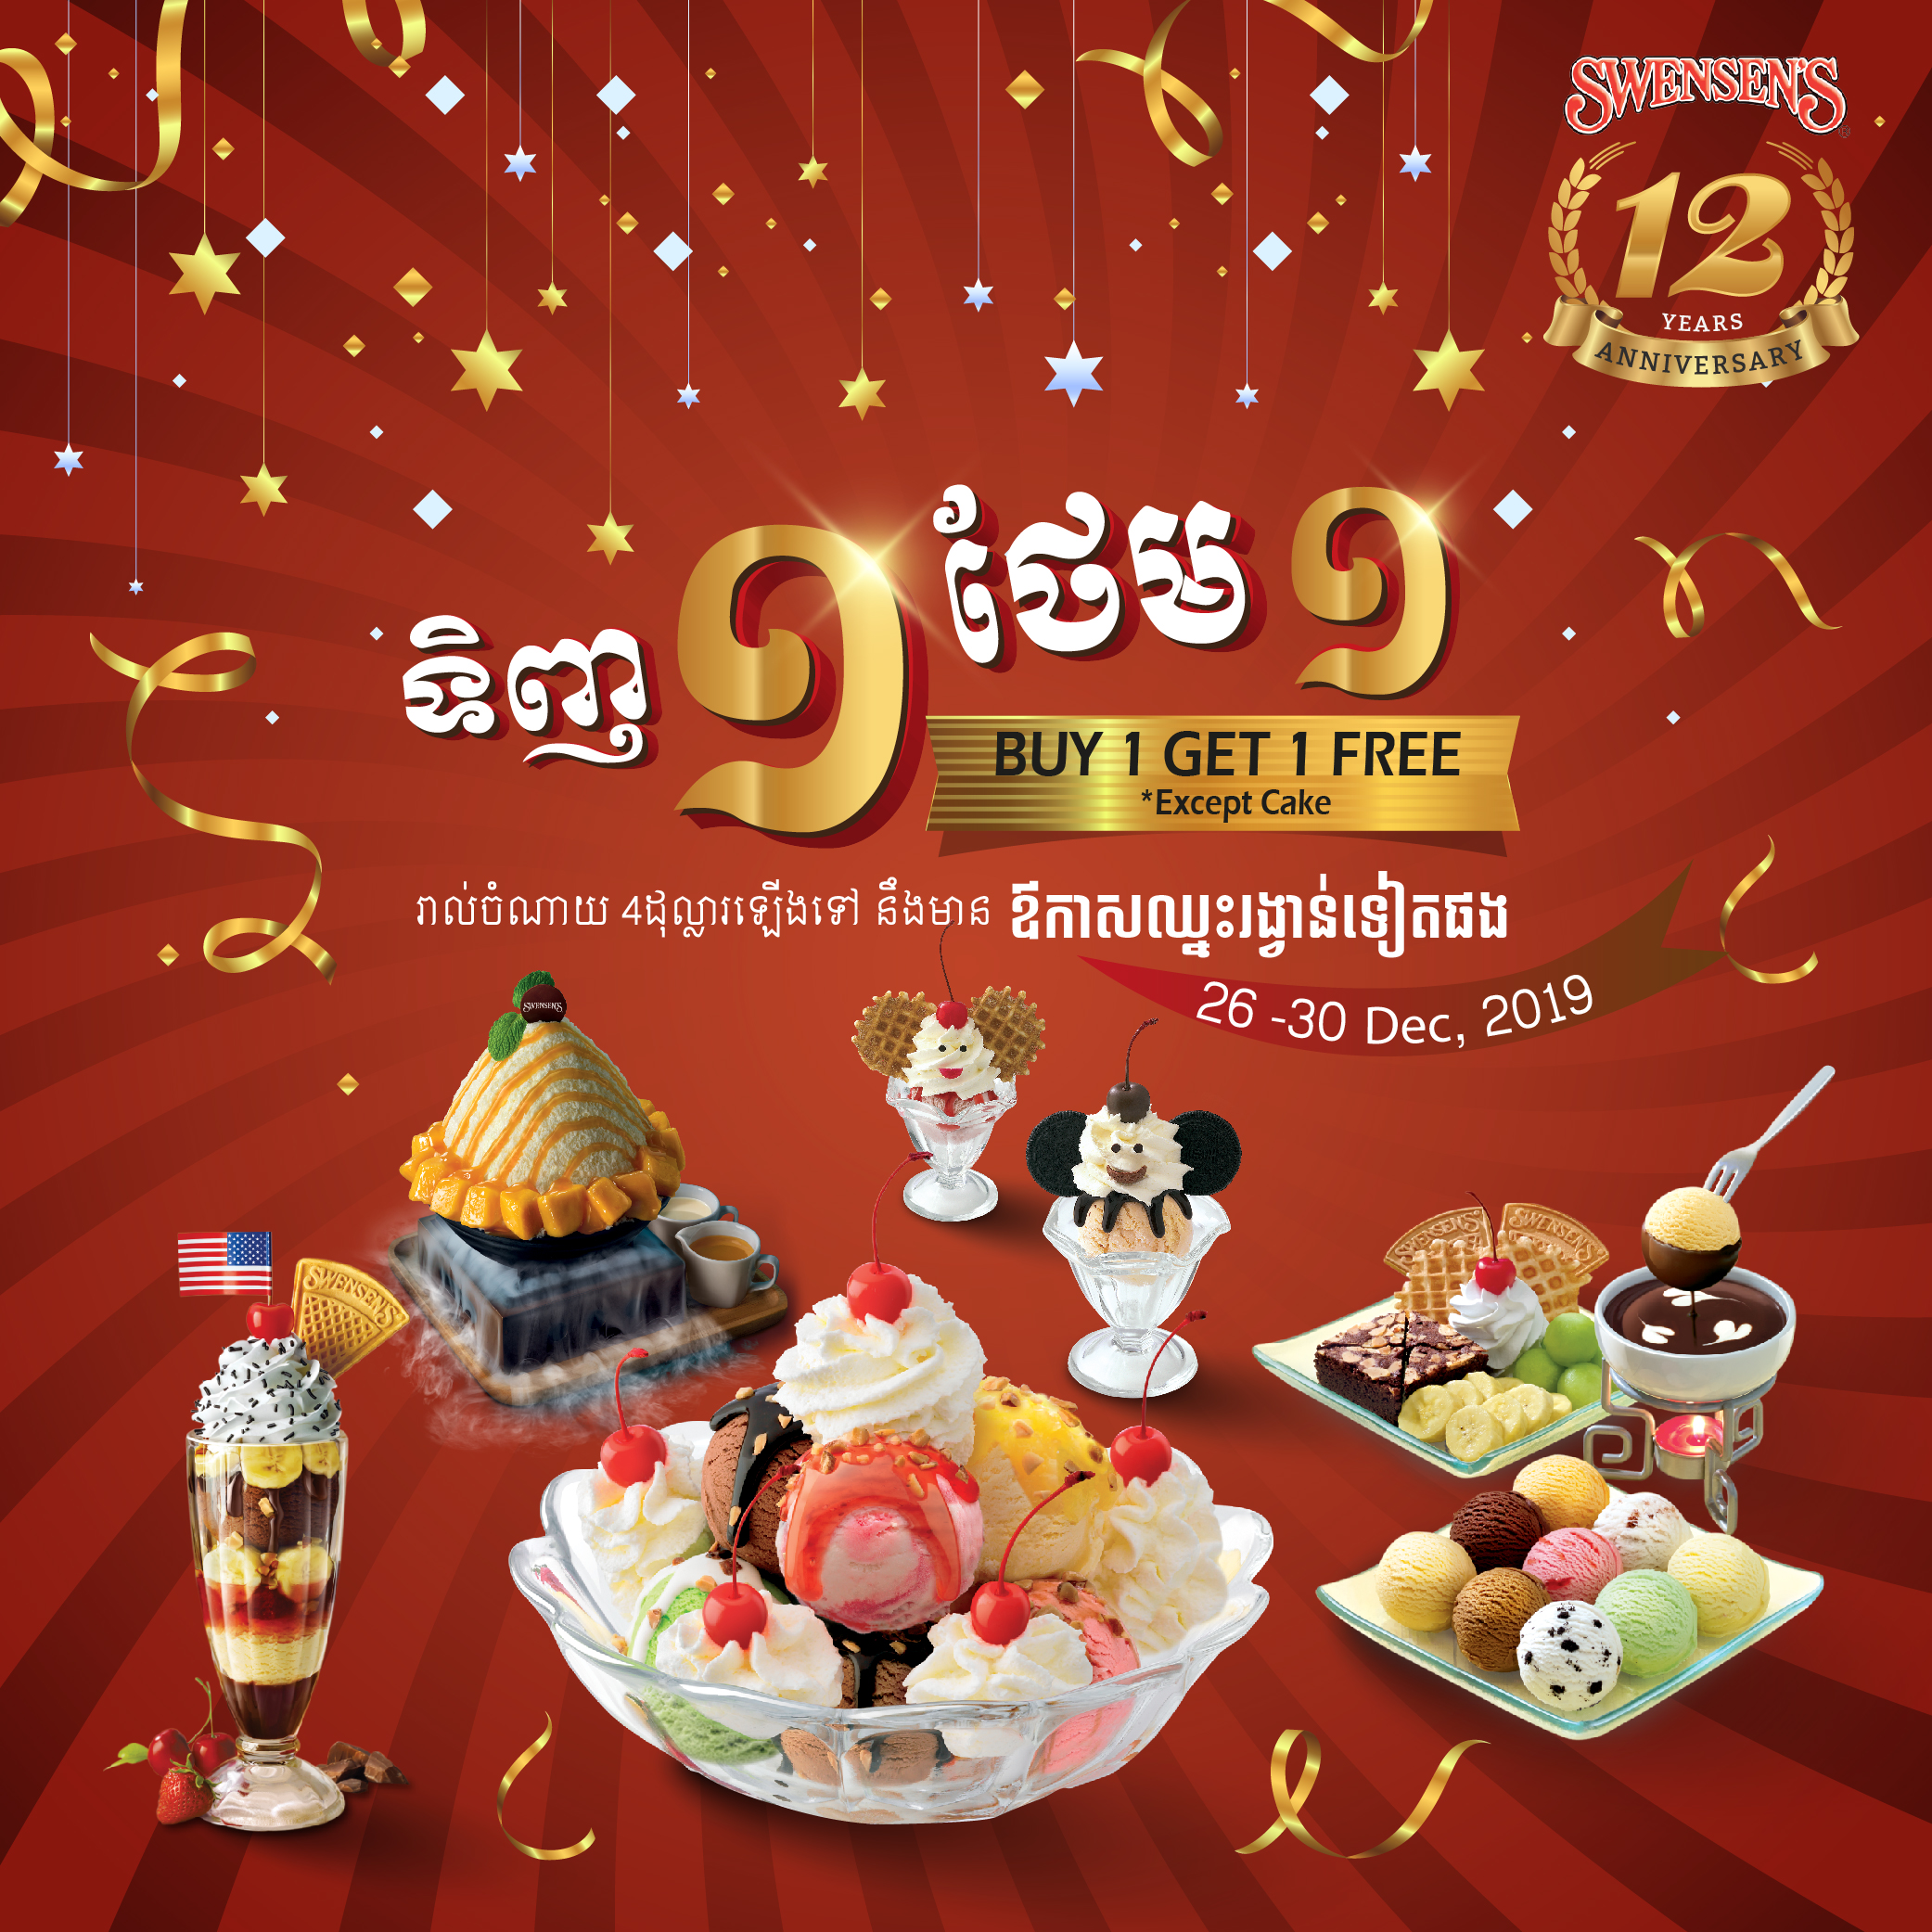 Swensen's-Buy 1+1